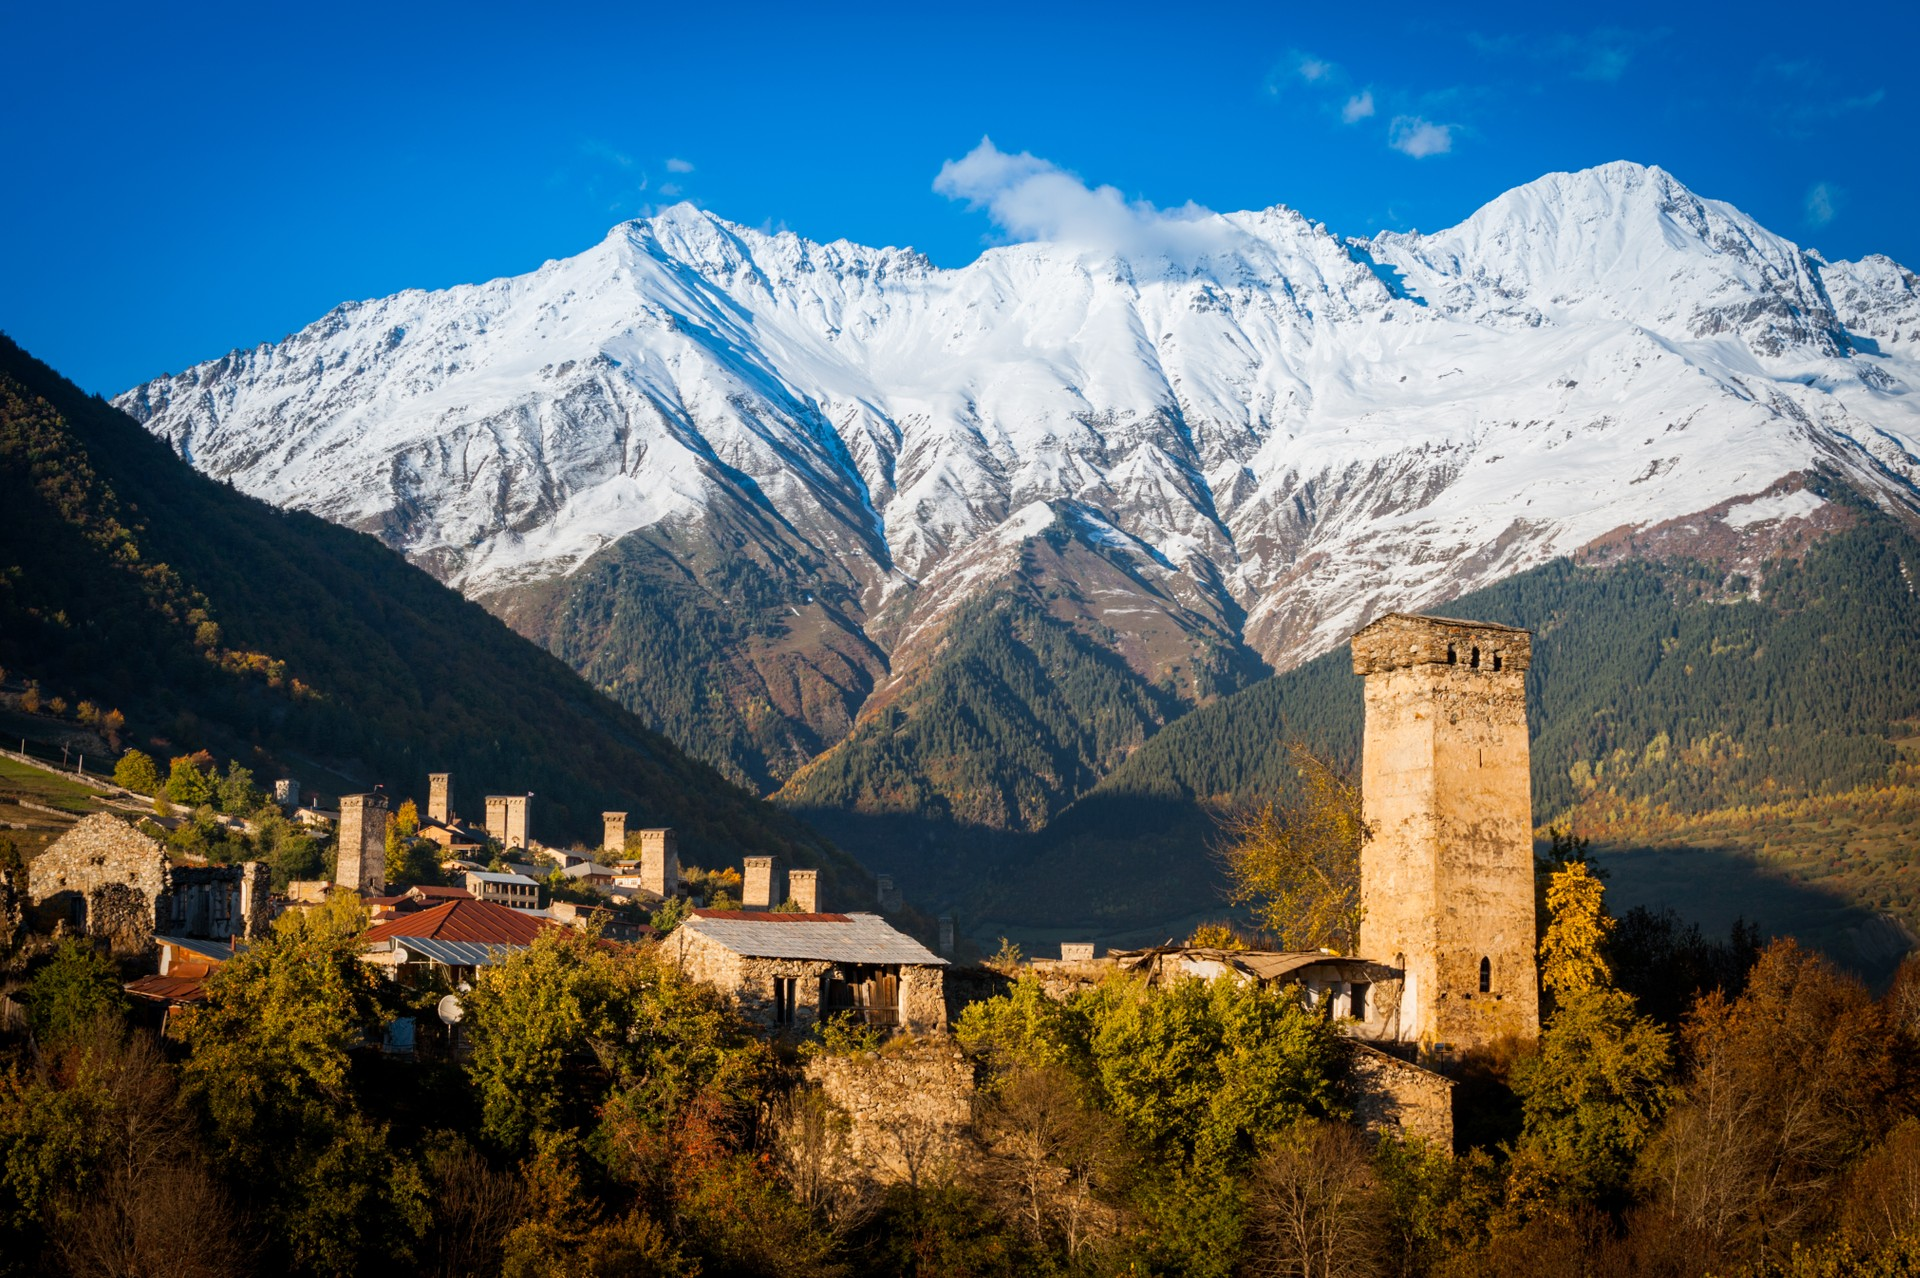 Mestia is often referred to as the capital of the Upper Svaneti region